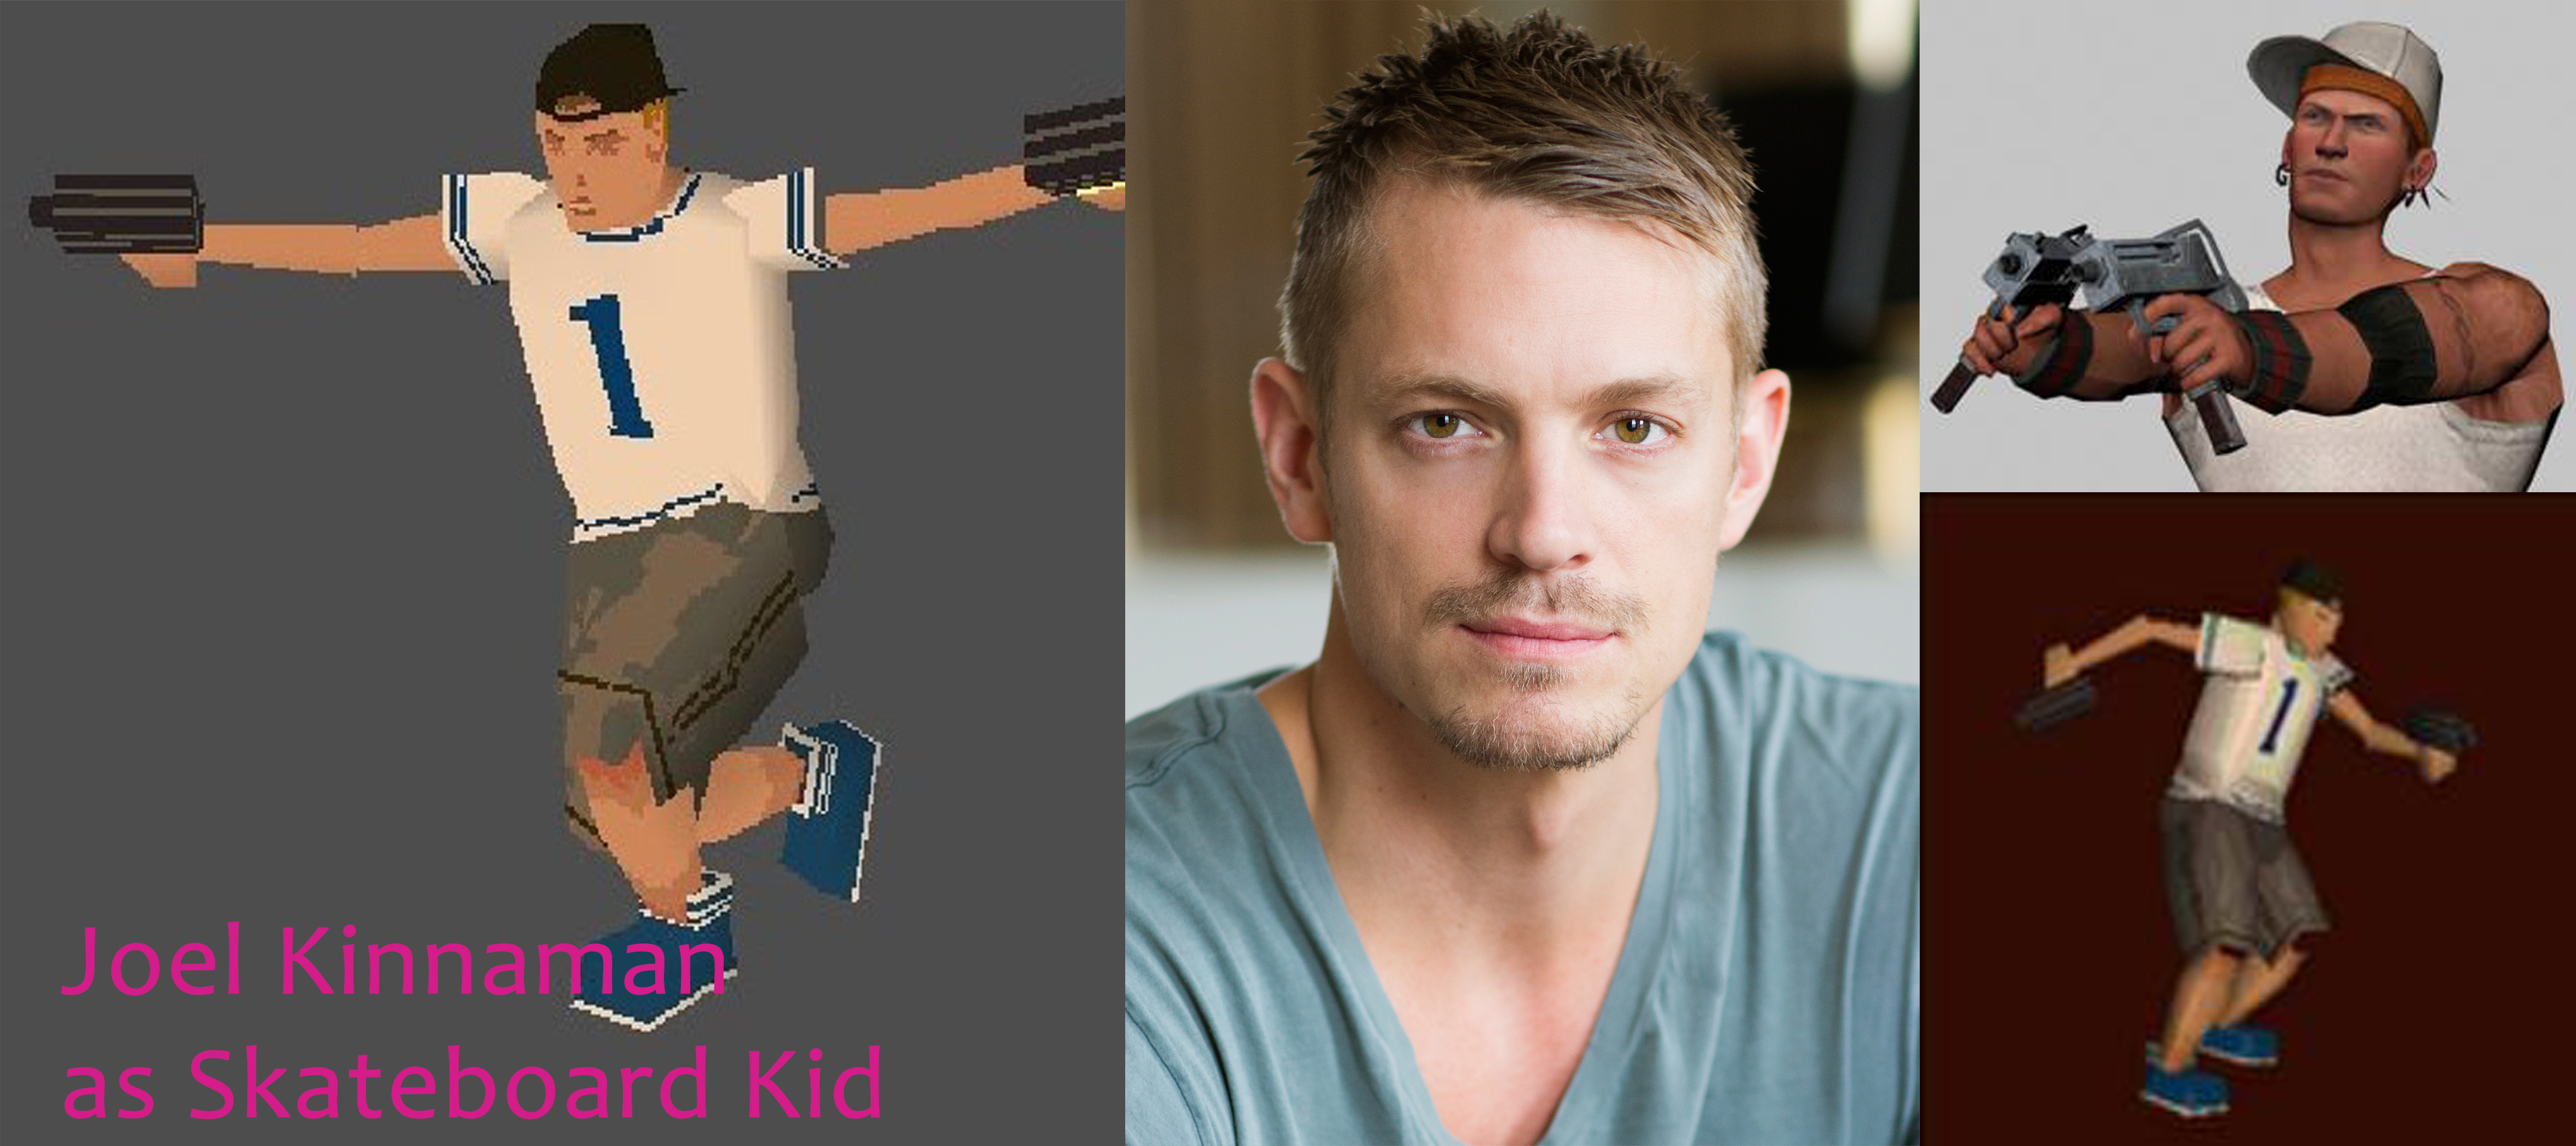 Joel Kinnaman as Skateboard Kid Jerome Johnson